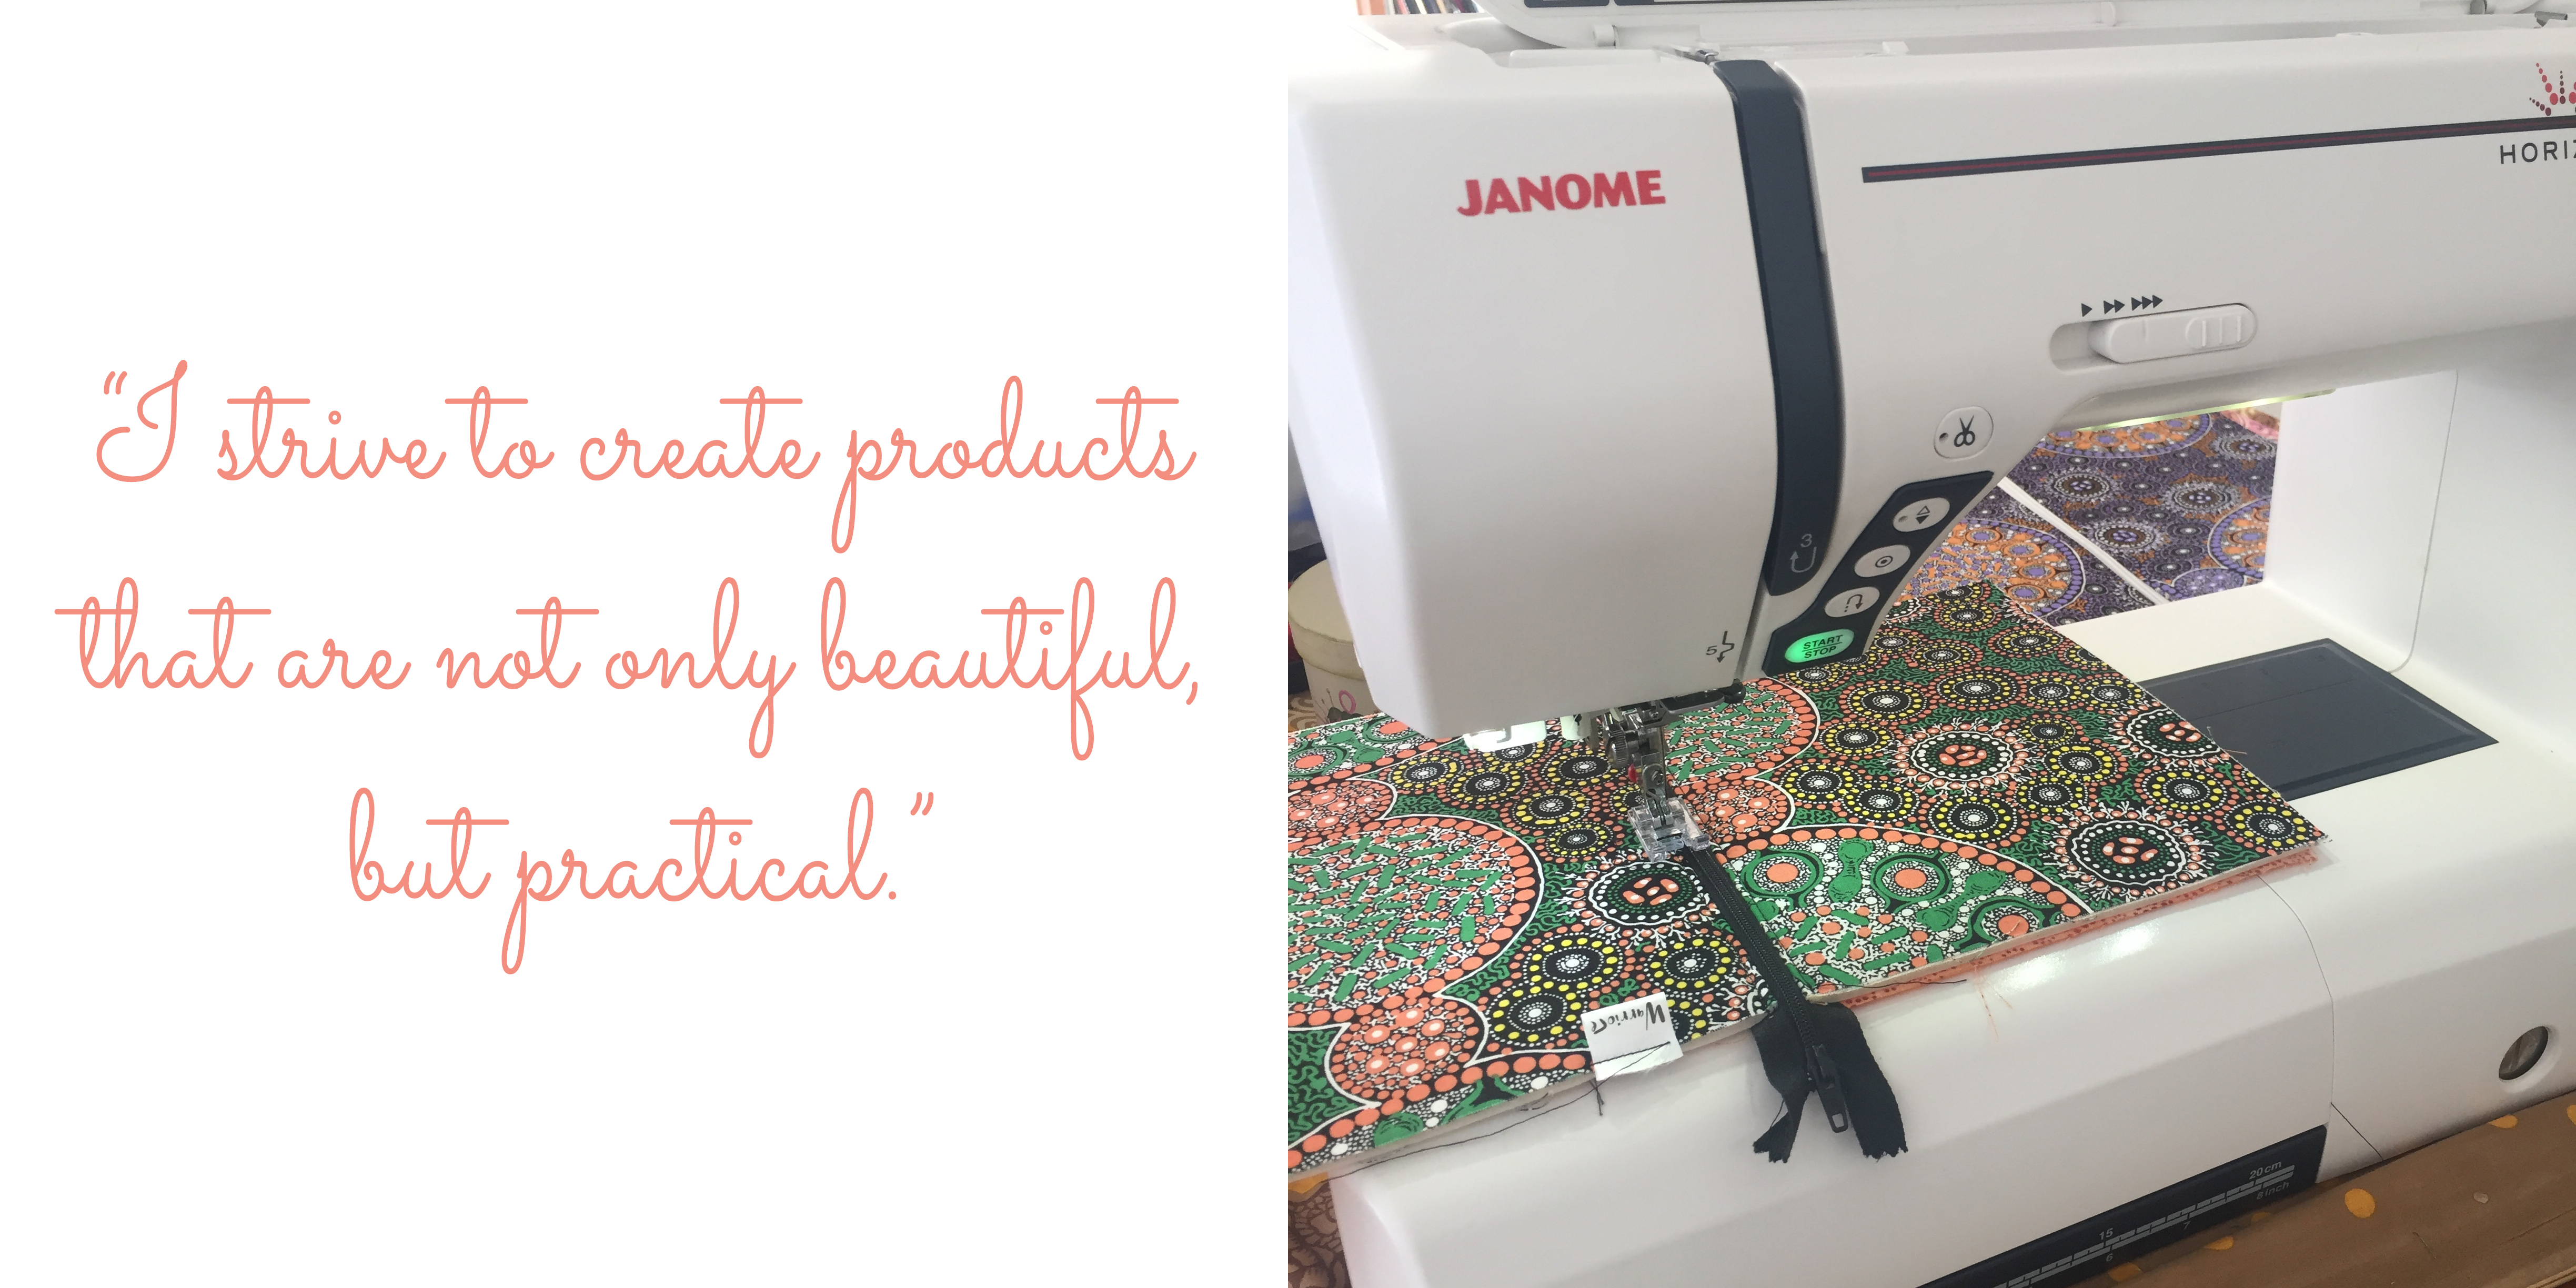 A coin purse in progress: 'I strive to create products that are not only beautiful, but practical.'